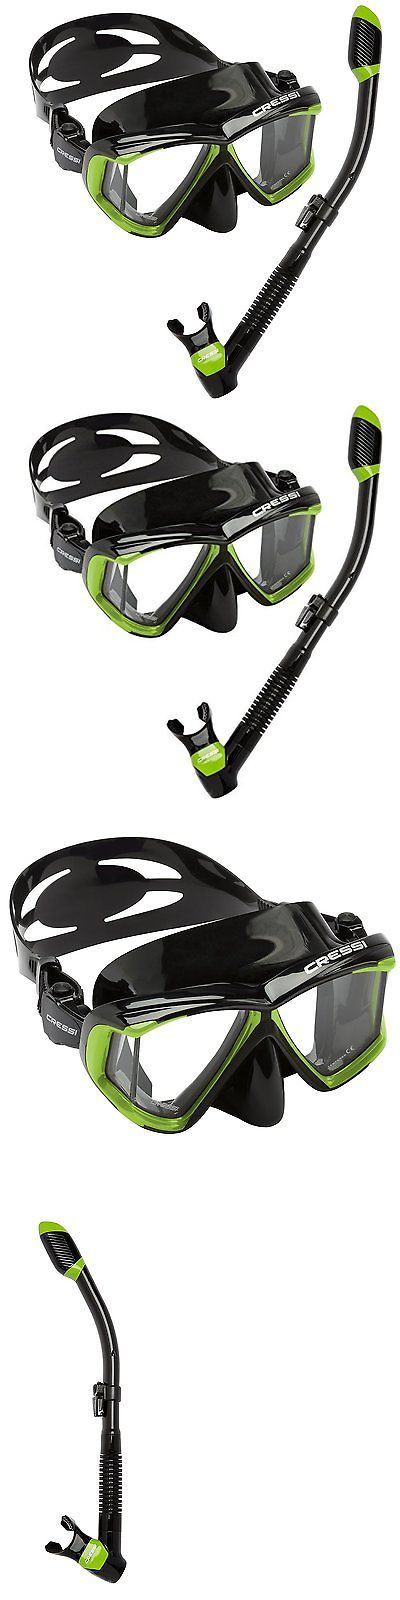 Snorkels and Sets 71162: Cressi Panoramic Wide View 4 Panel Mask Dry Snorkel Set, Lime Green Black -> BUY IT NOW ONLY: $62.32 on eBay!